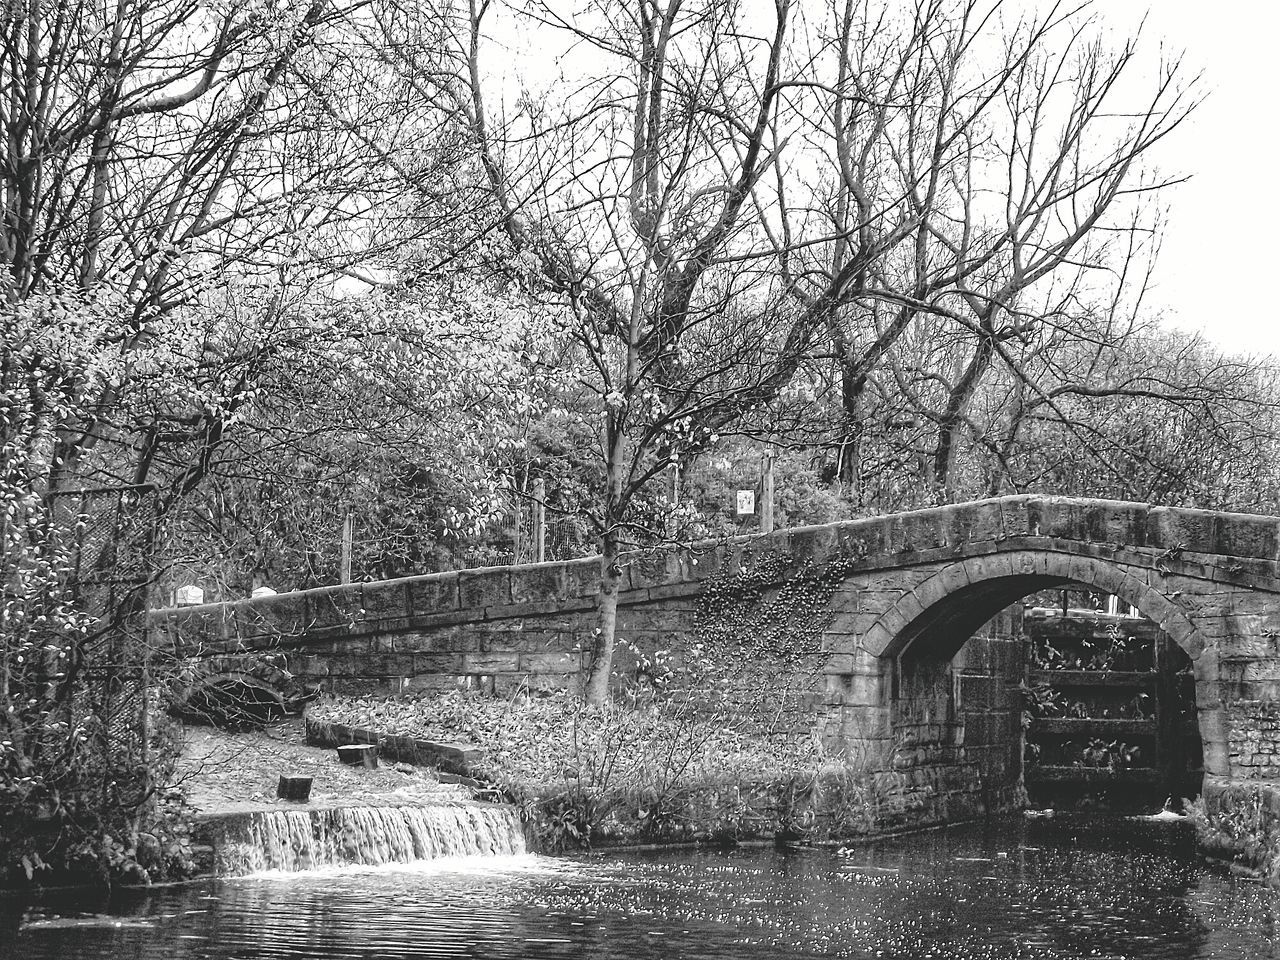 bridge - man made structure, connection, tree, water, river, bare tree, architecture, arch bridge, arch, built structure, waterfront, outdoors, branch, day, bridge, nature, covered bridge, transportation, no people, footbridge, sky